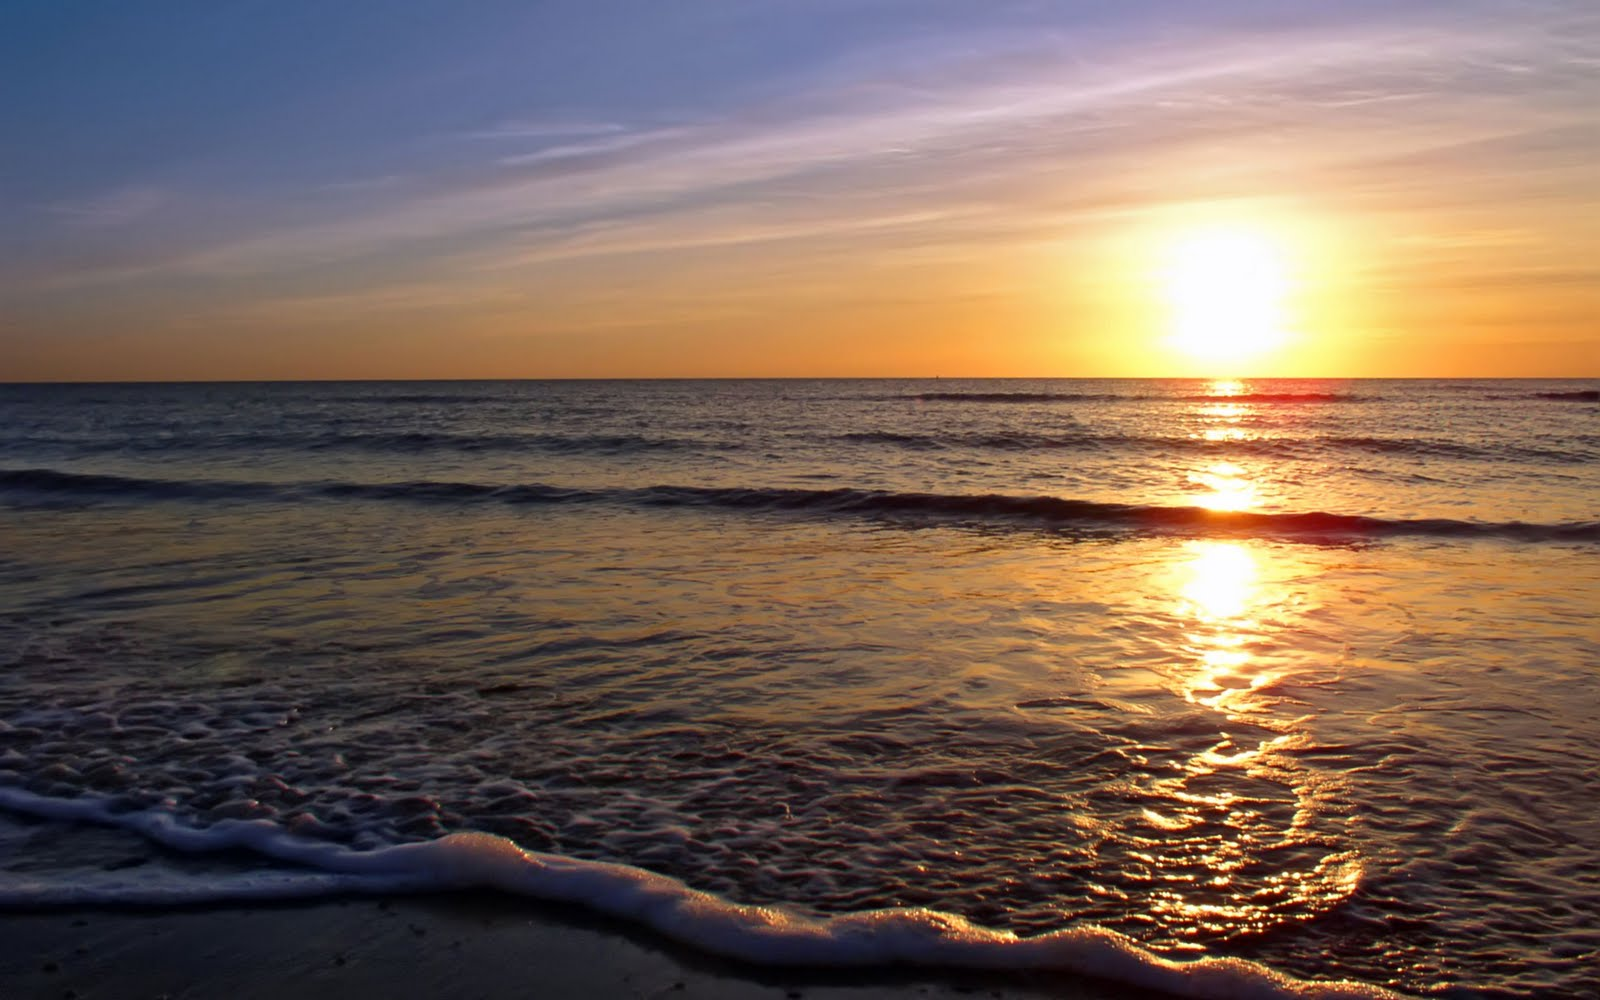 Desktop Backgrounds And Wallpapers Sunset Beach 1600x1000